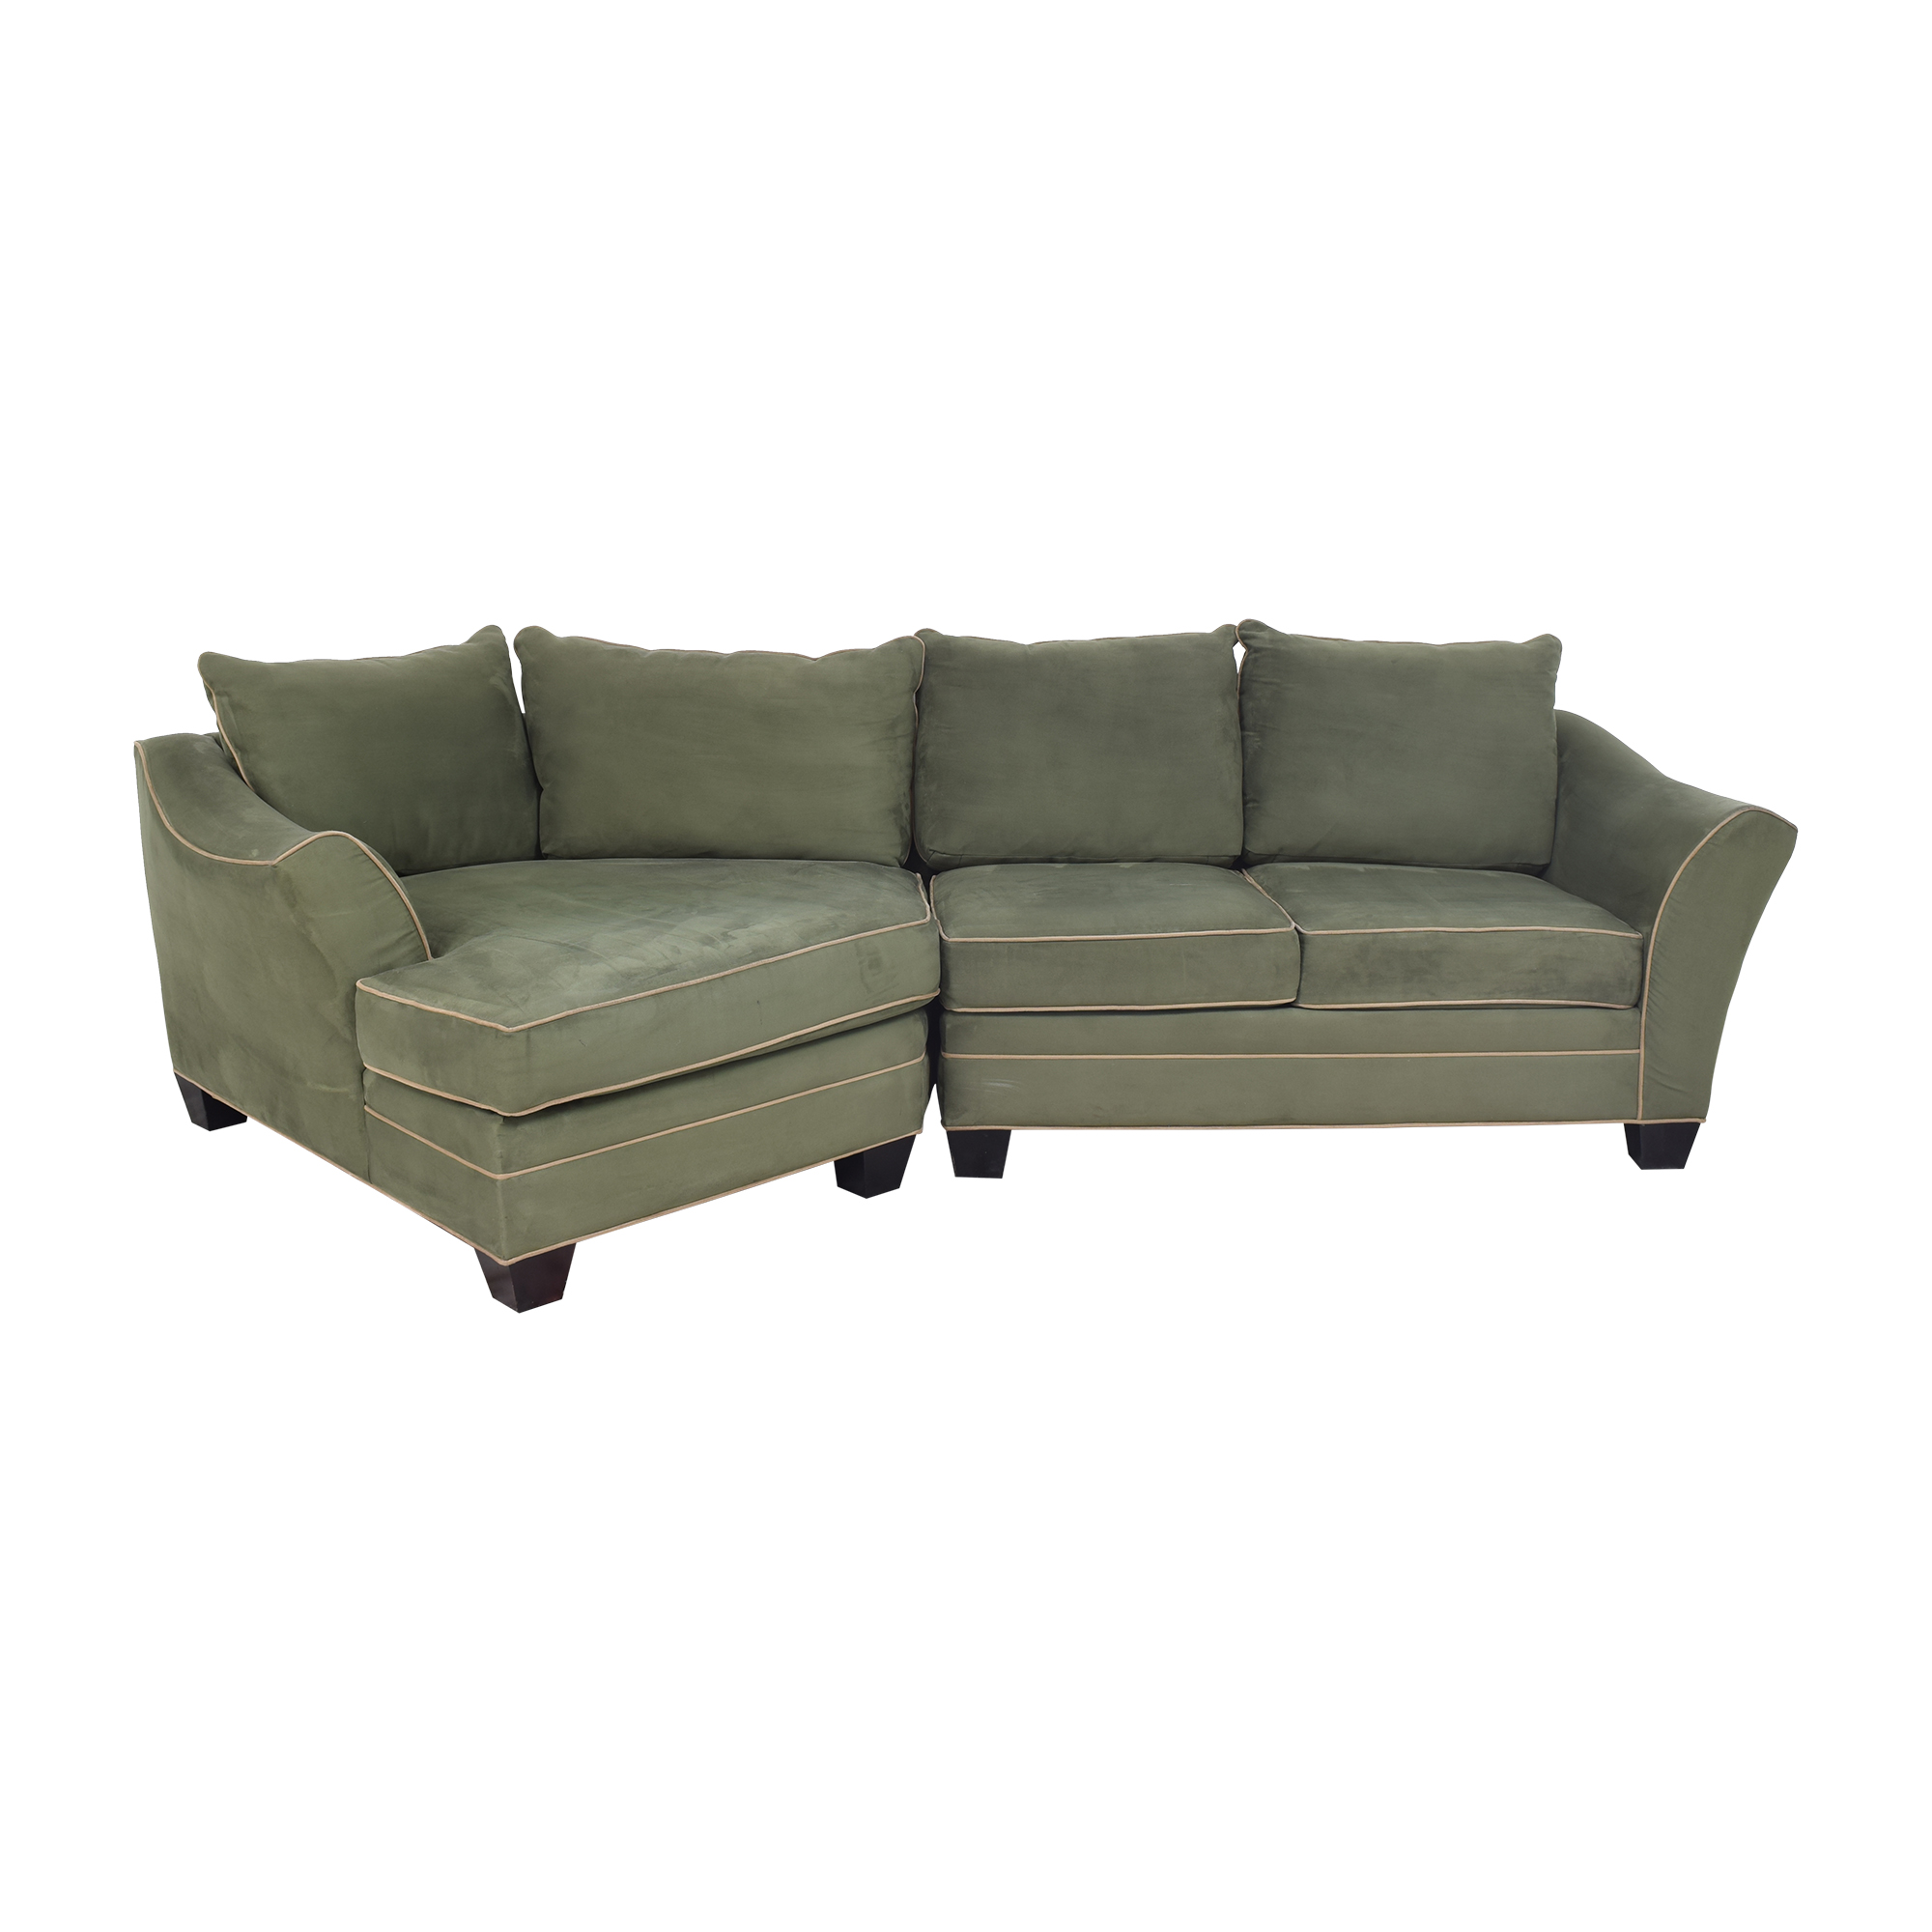 Raymour & Flanigan Raymour & Flanigan Foresthill Two-Piece Sectional Sofa nj